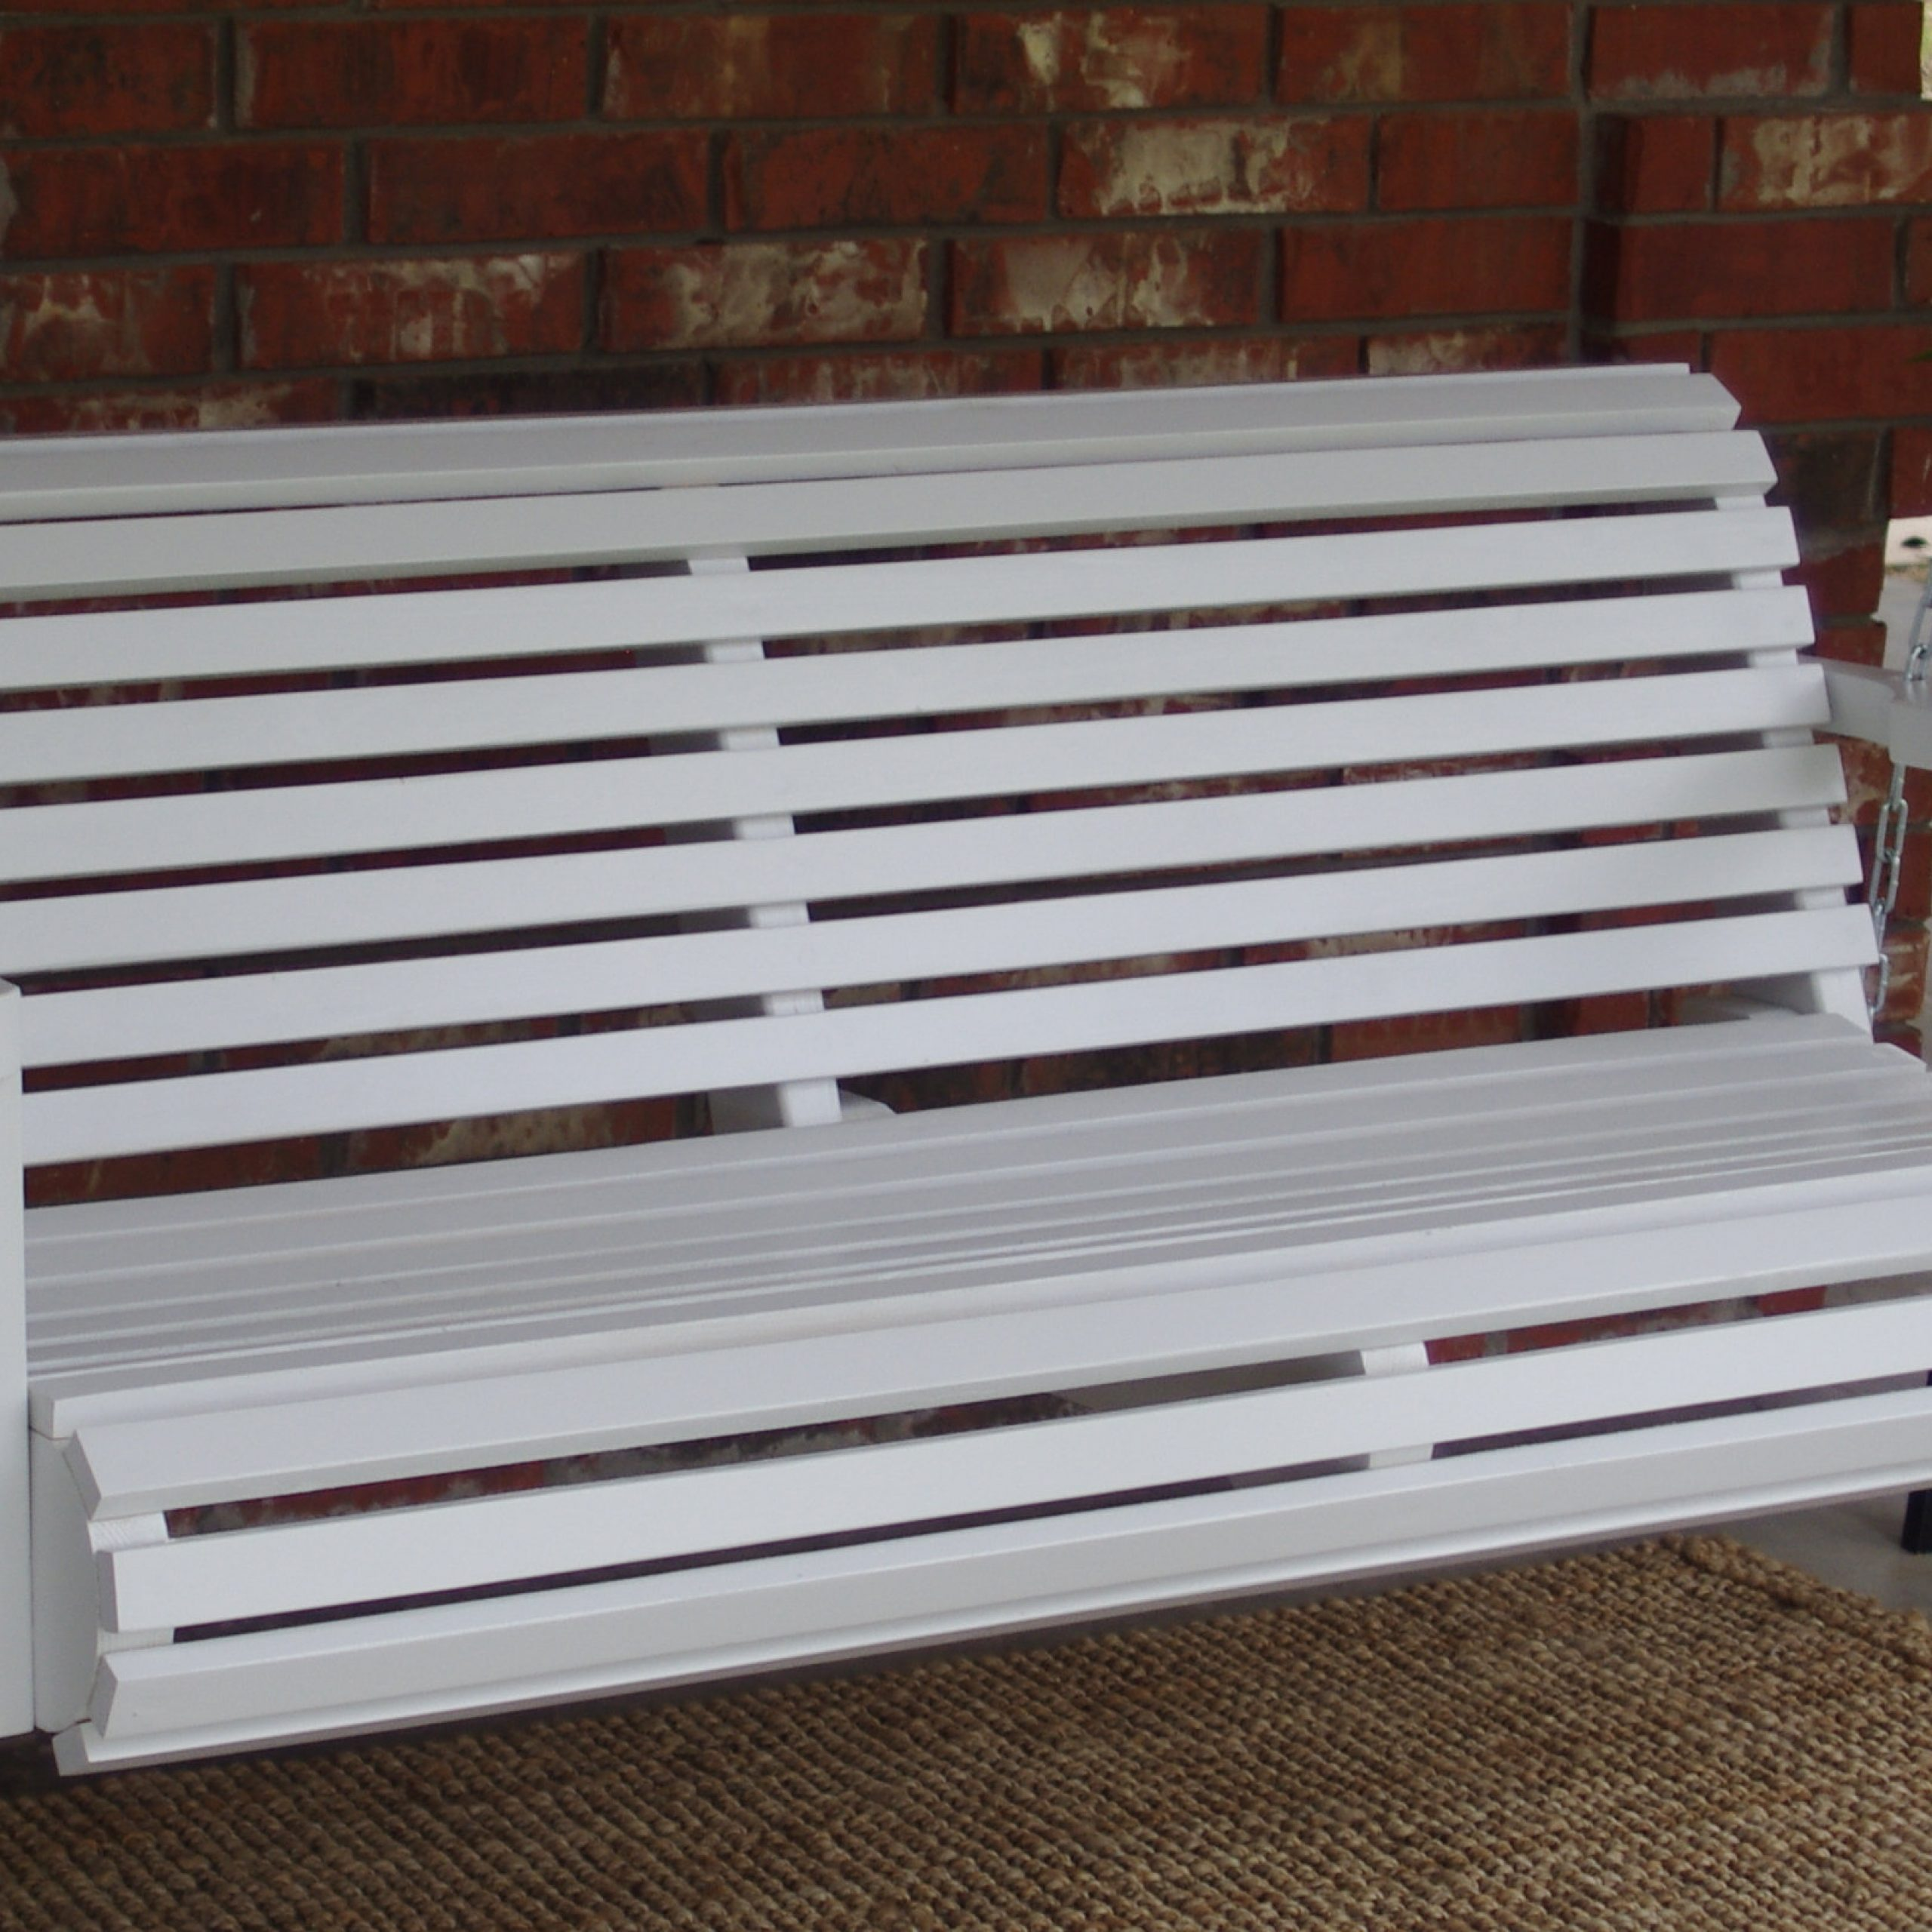 5 Ft Cedar Swings With Springs For Most Up To Date Brand New 5 Foot Painted Contoured Classic White Porch Swing – With Hanging Chain Or Rope – Free Shipping (View 16 of 25)